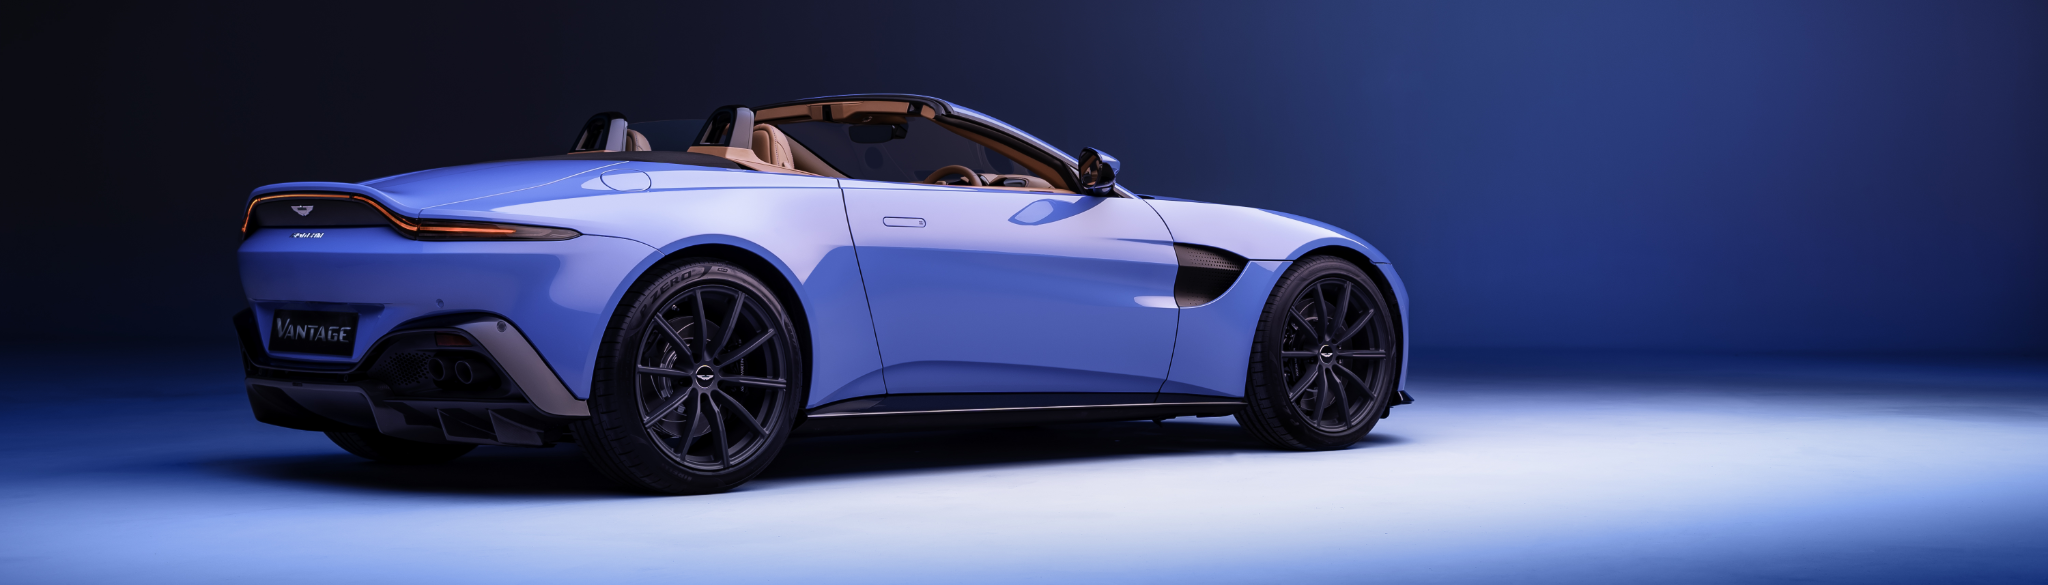 First Look At The 2021 Vantage Roadster Aston Martin Bristol